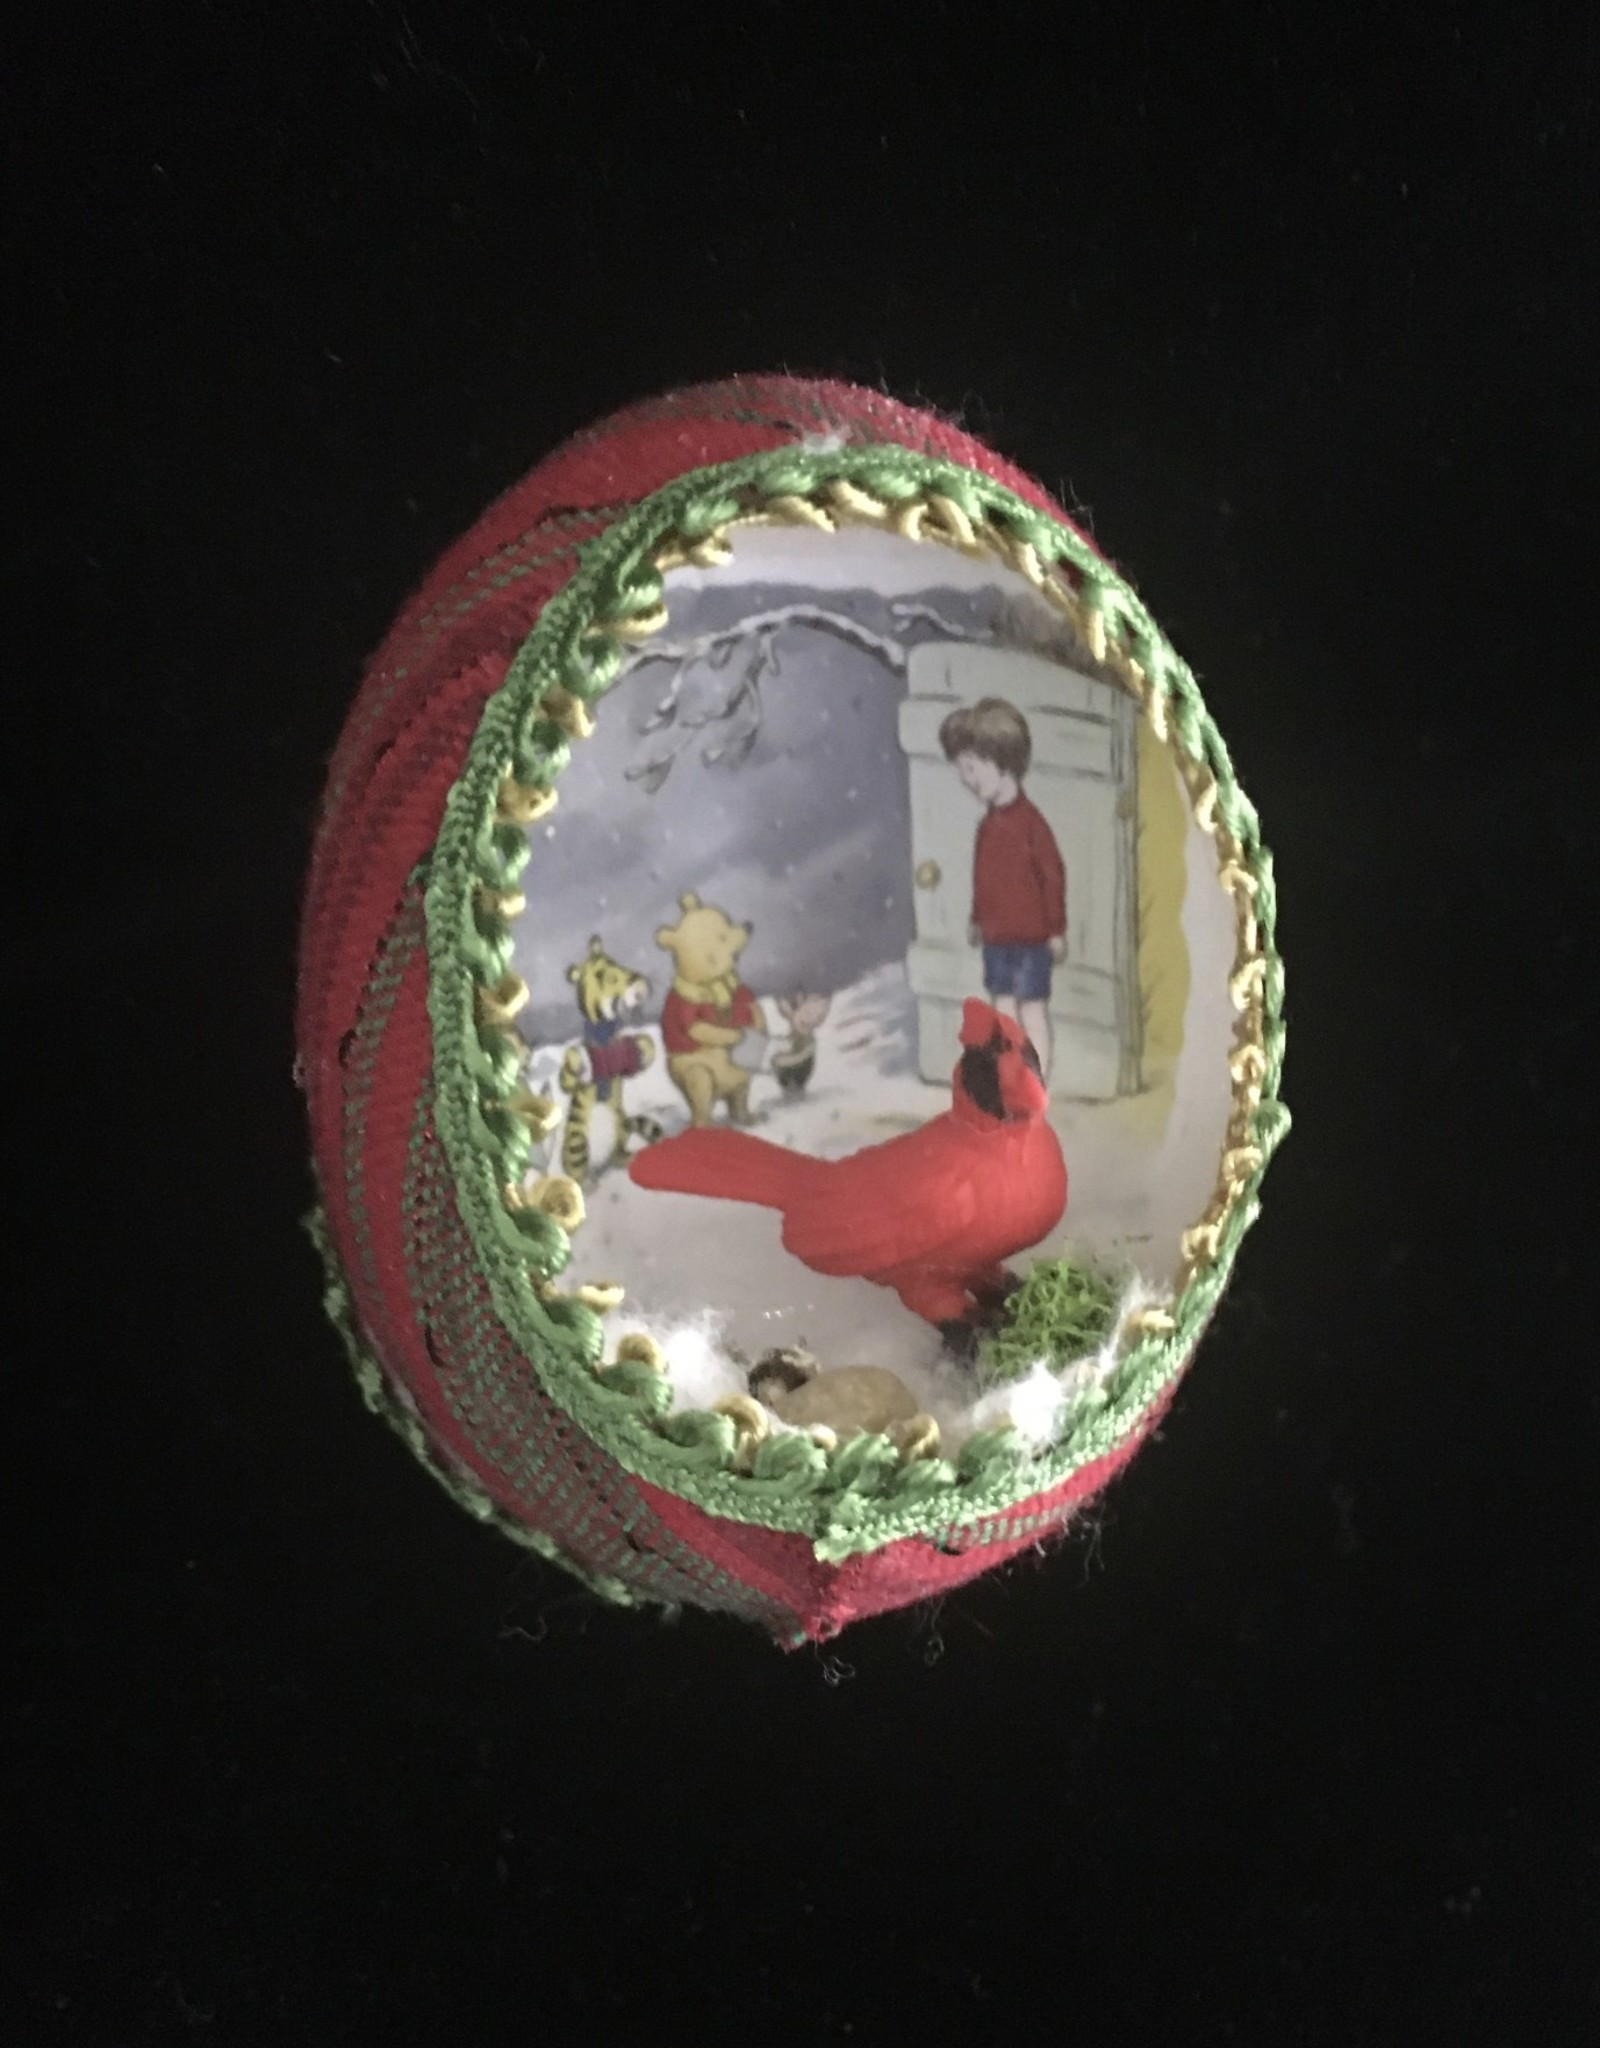 Ammi Brooks Winnie the Pooh Real Egg Ornament Cardinal